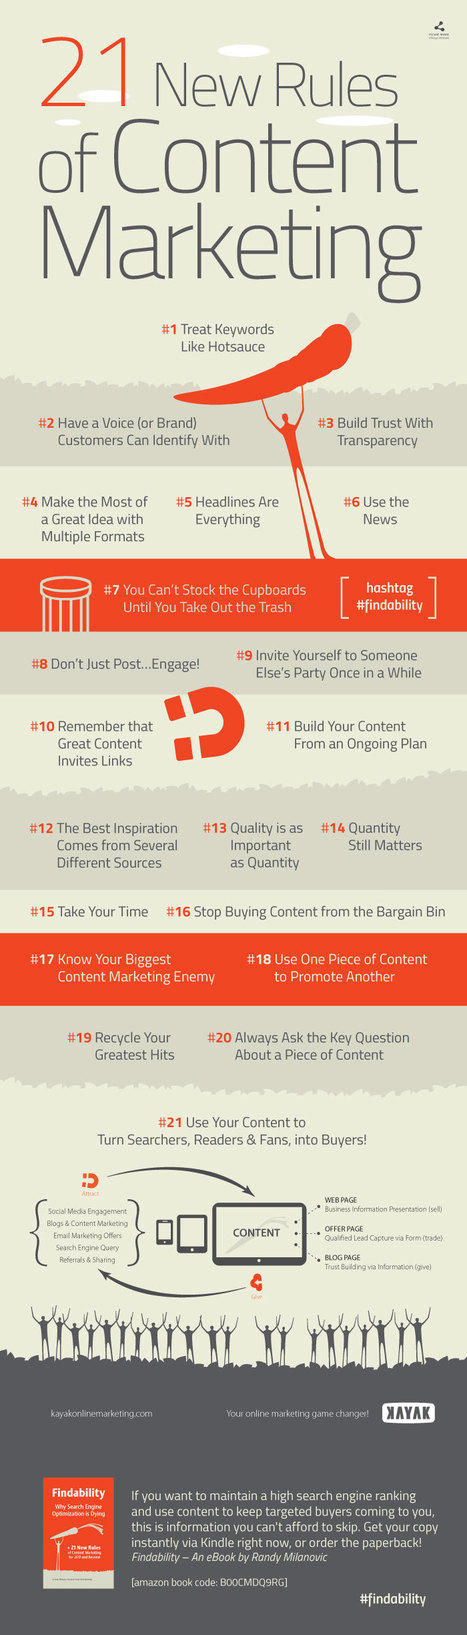 The 21 New Rules of Content Marketing [INFOGRAPHIC] | We Hub {nuova imprenditorialità, innovazione, creatività e impresa sociale} | Scoop.it